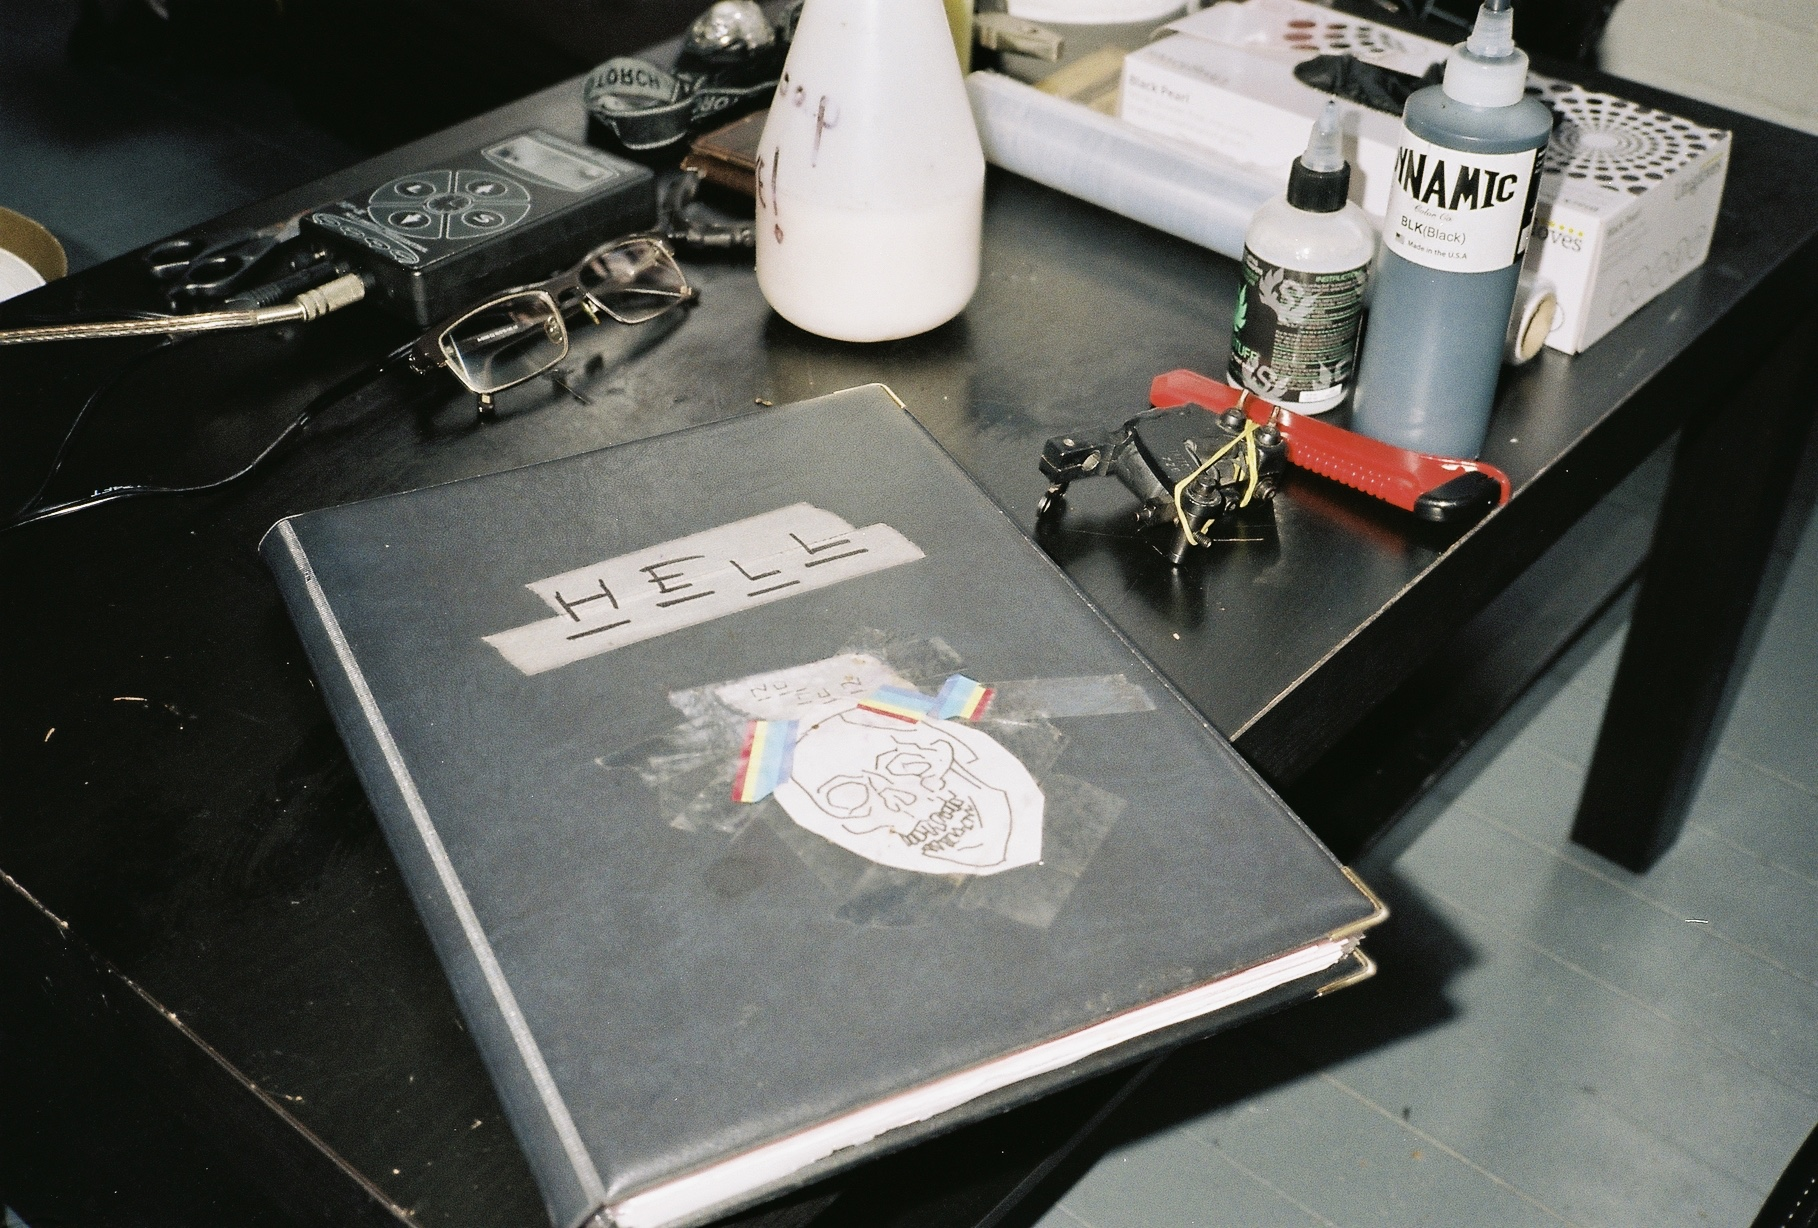 Ross' tattoo flash book laid out on his table.